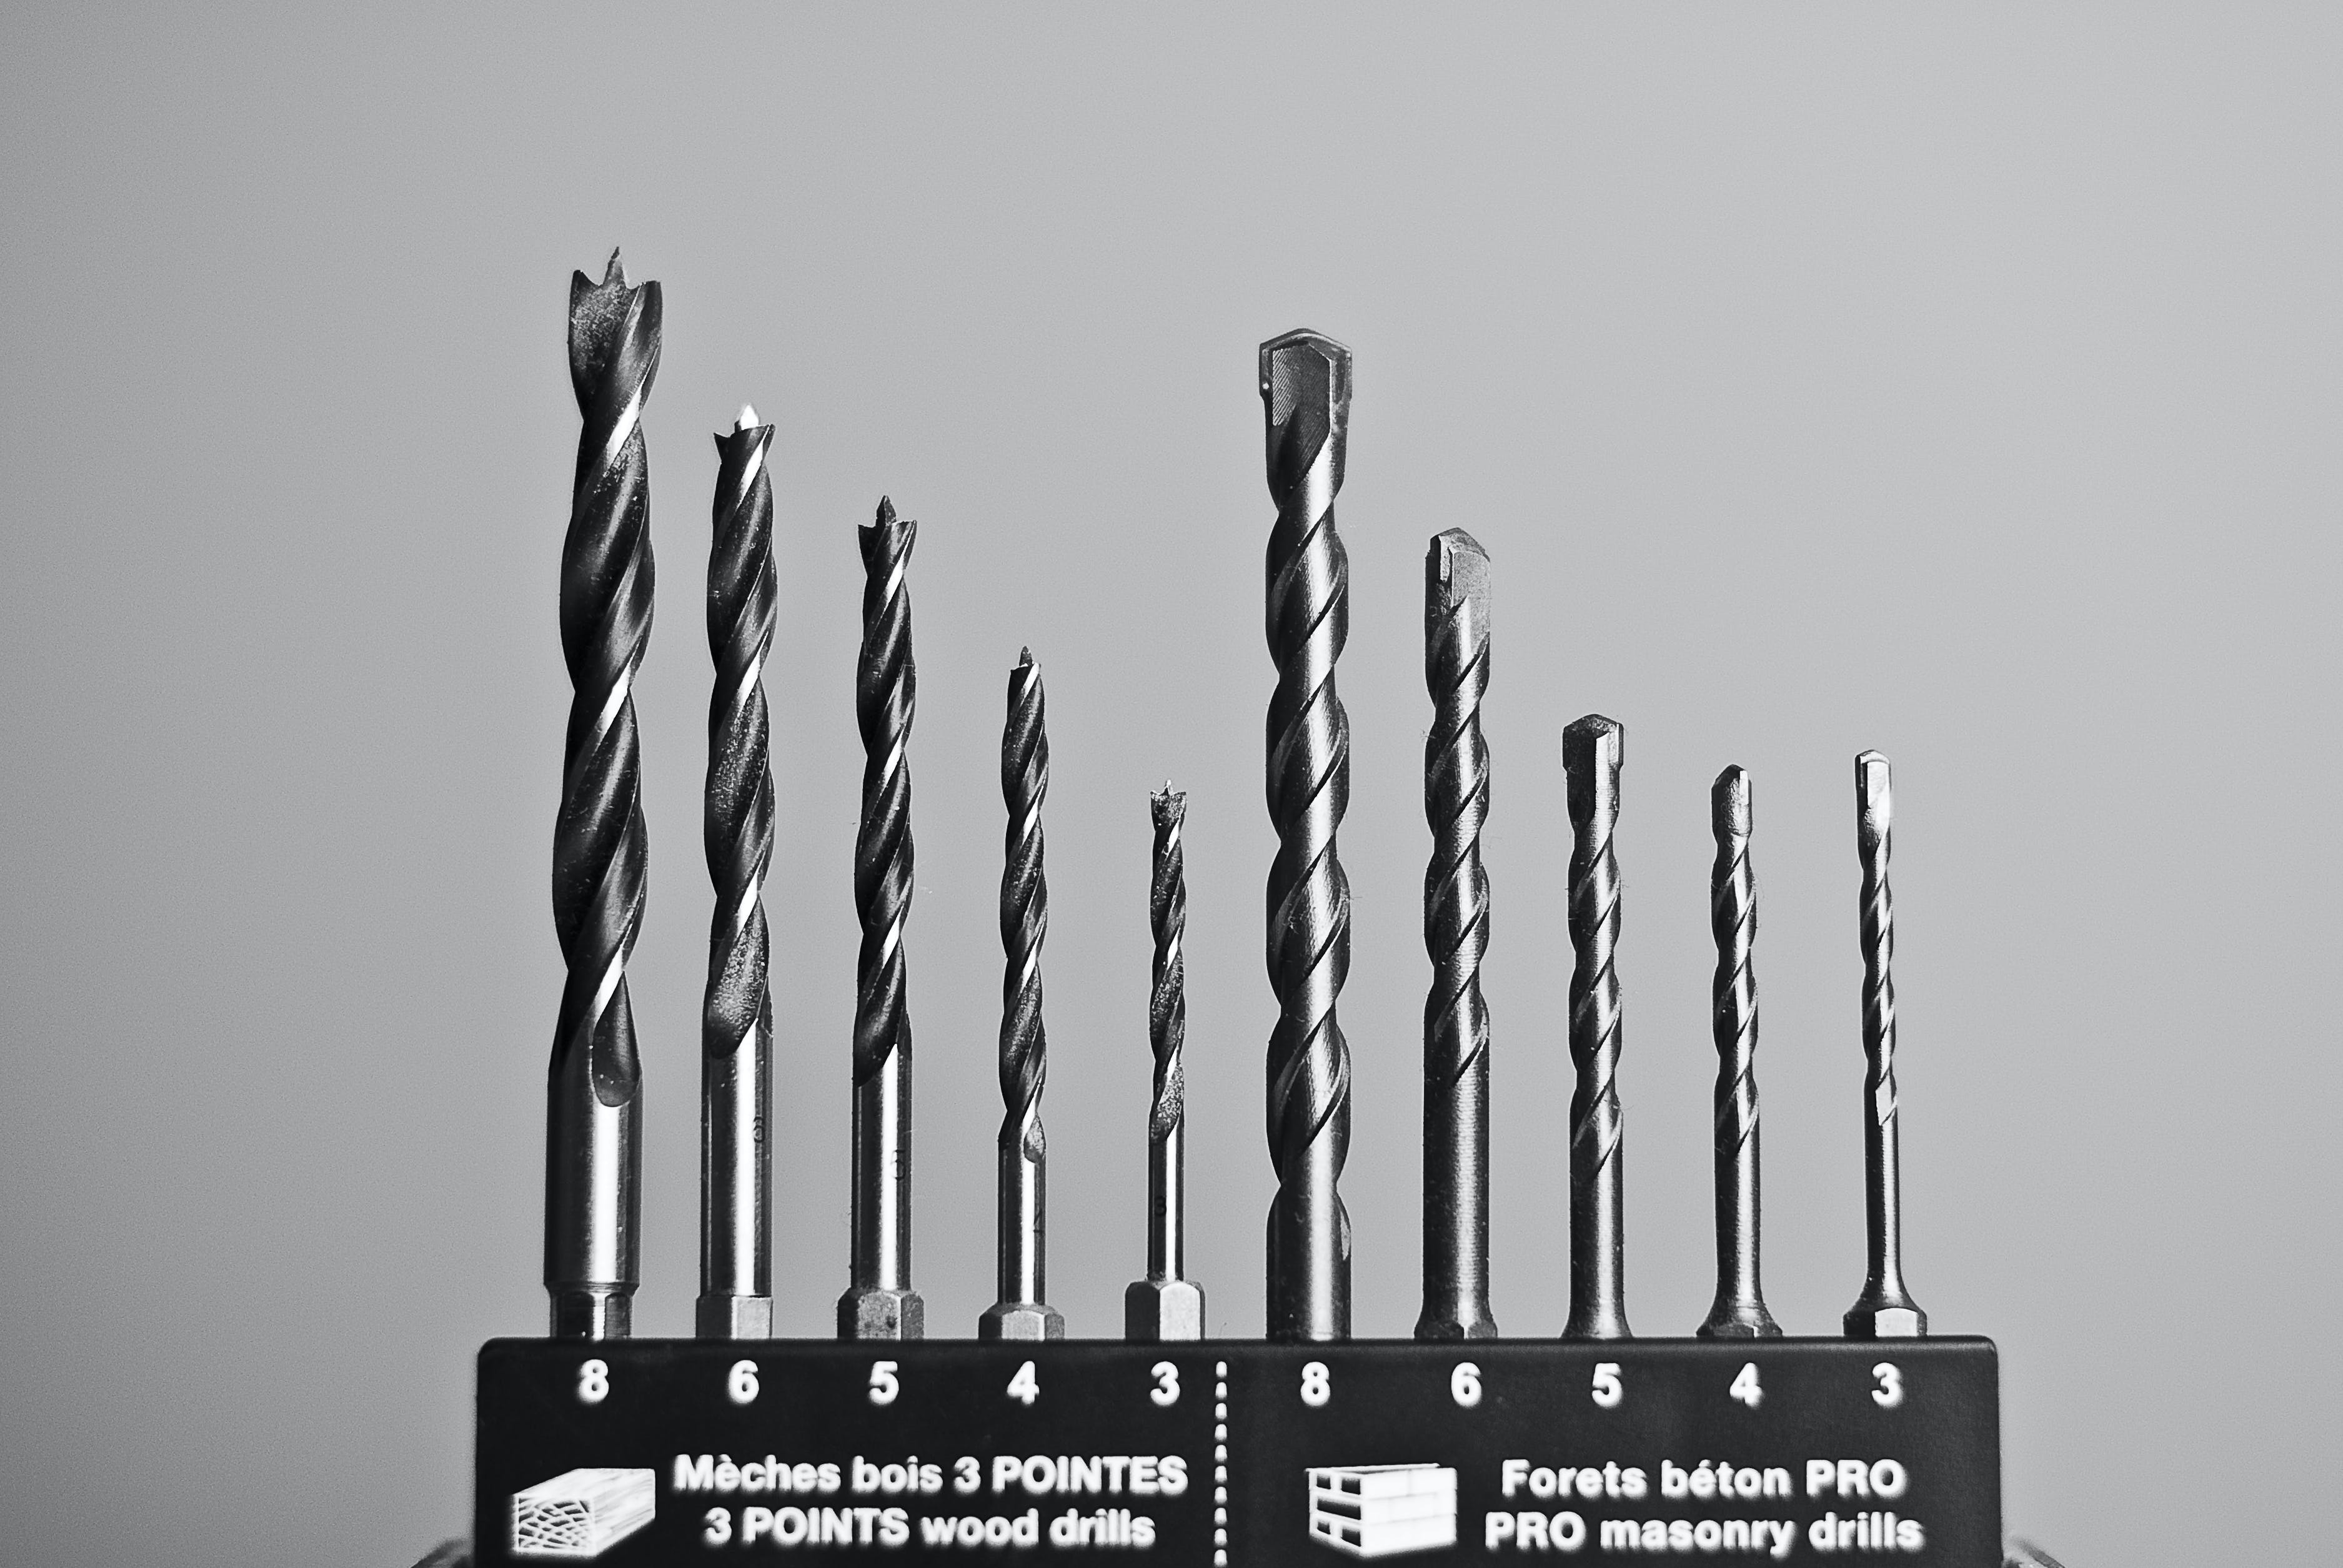 Grayscale Photography of Masonry and Wood Drills